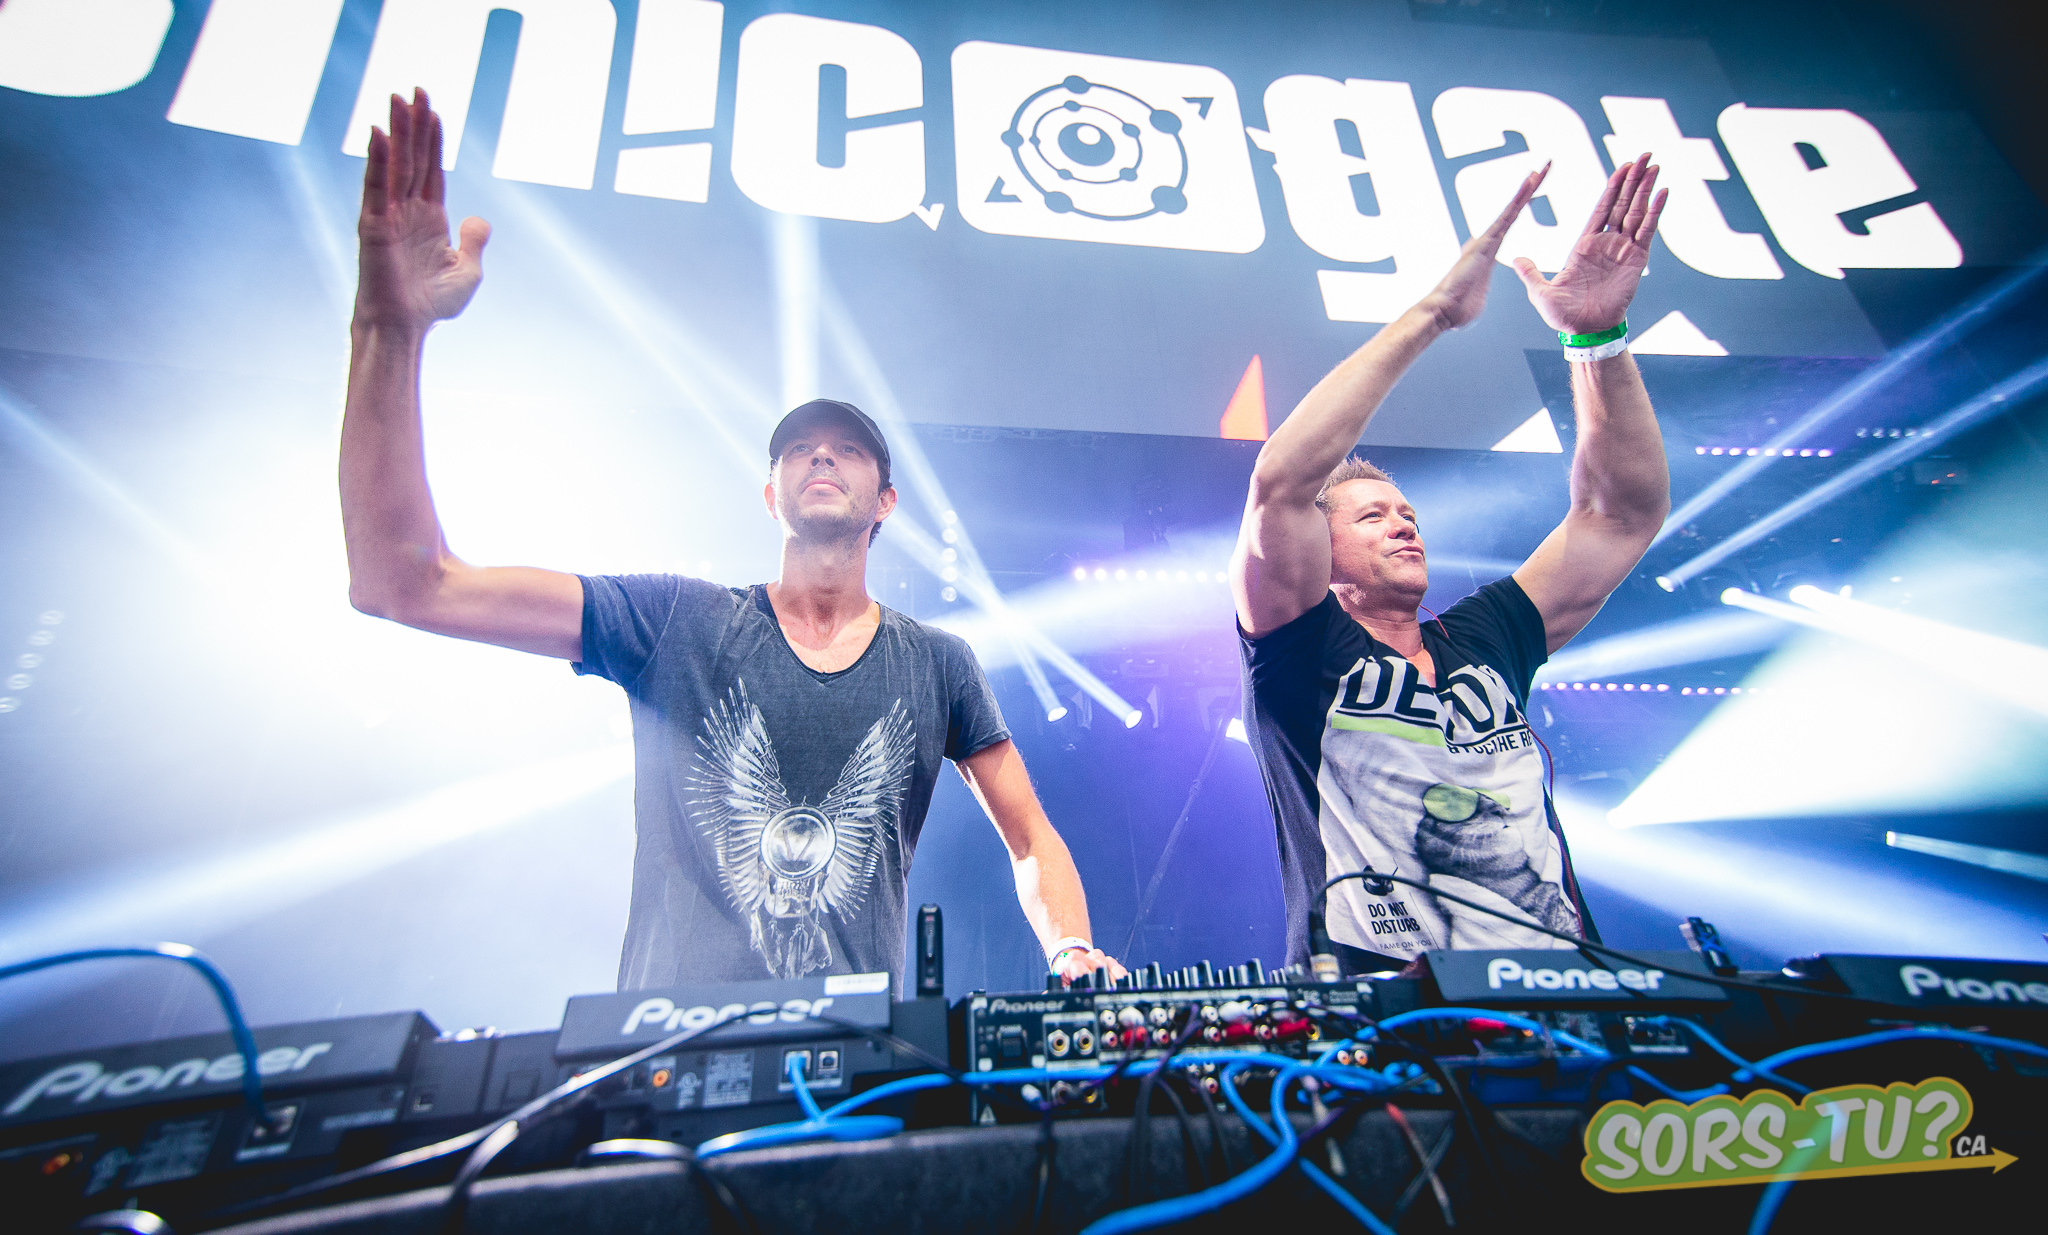 cosmic gate-IleSoniq-2014-1-7.jpg